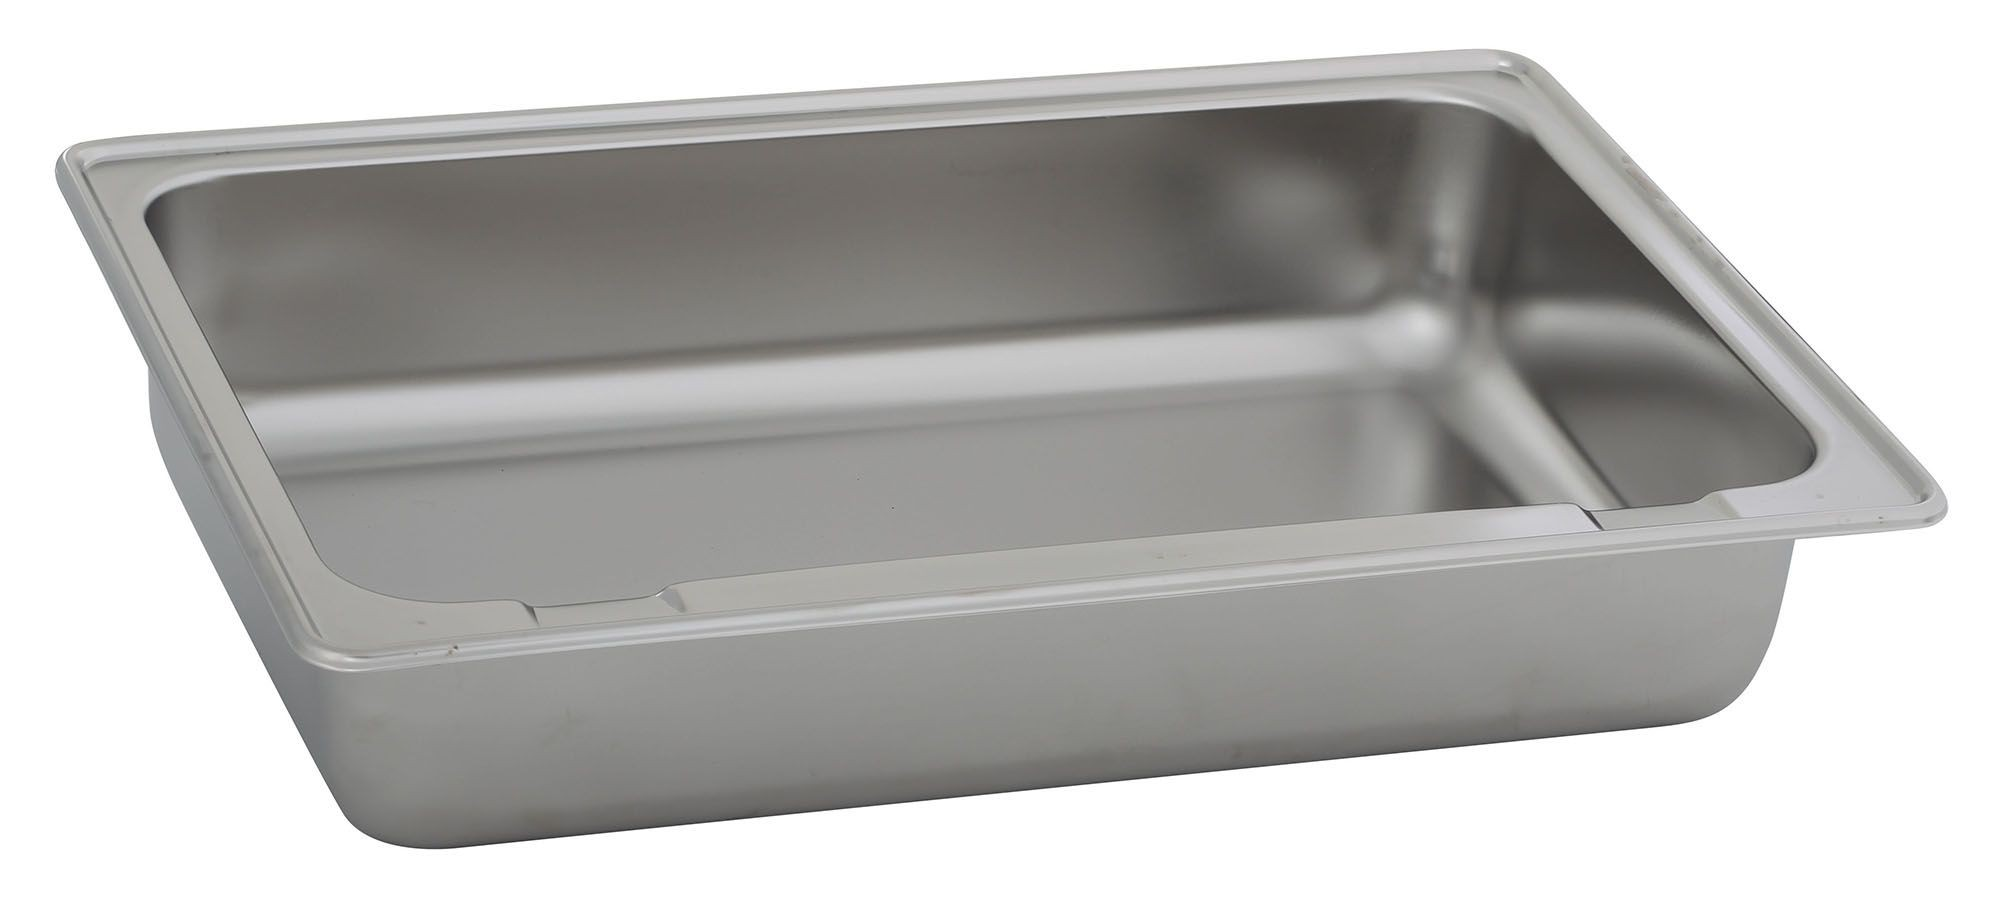 Winco 101-WP Water Pan for 8 Qt. Virtuoso Roll-Top Chafers 101A and 101B